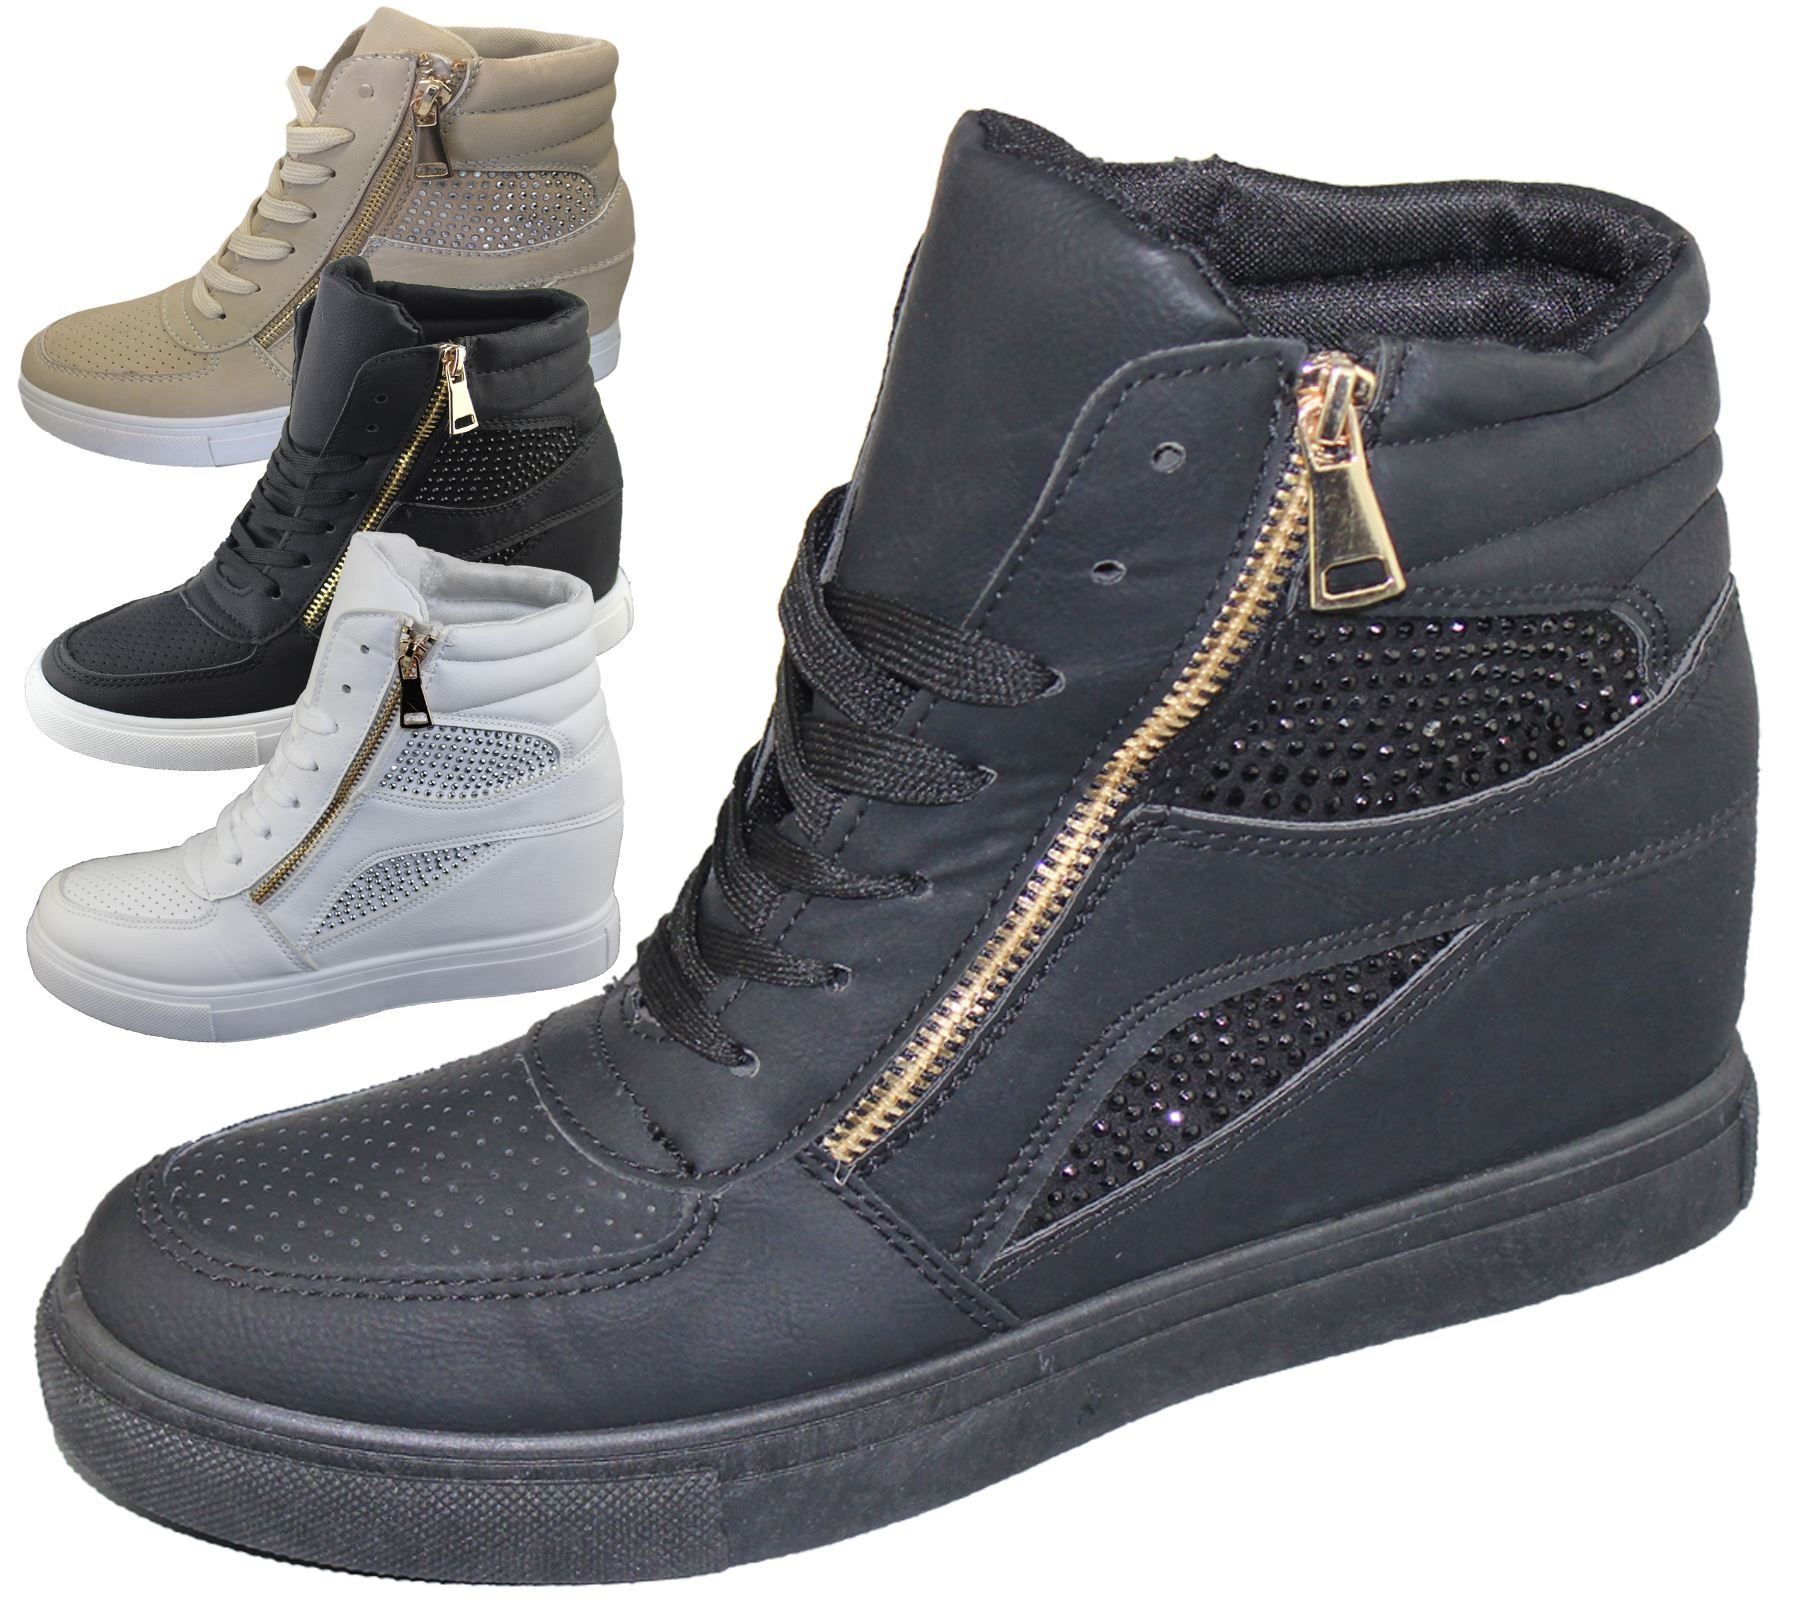 Girls' Boots from taradsod.tk Whether she likes colorful rain boots, fringe moccasins, tough combat pairs, riding gear, or cowboy styles, taradsod.tk offers all these styles of girls' boots and many more.